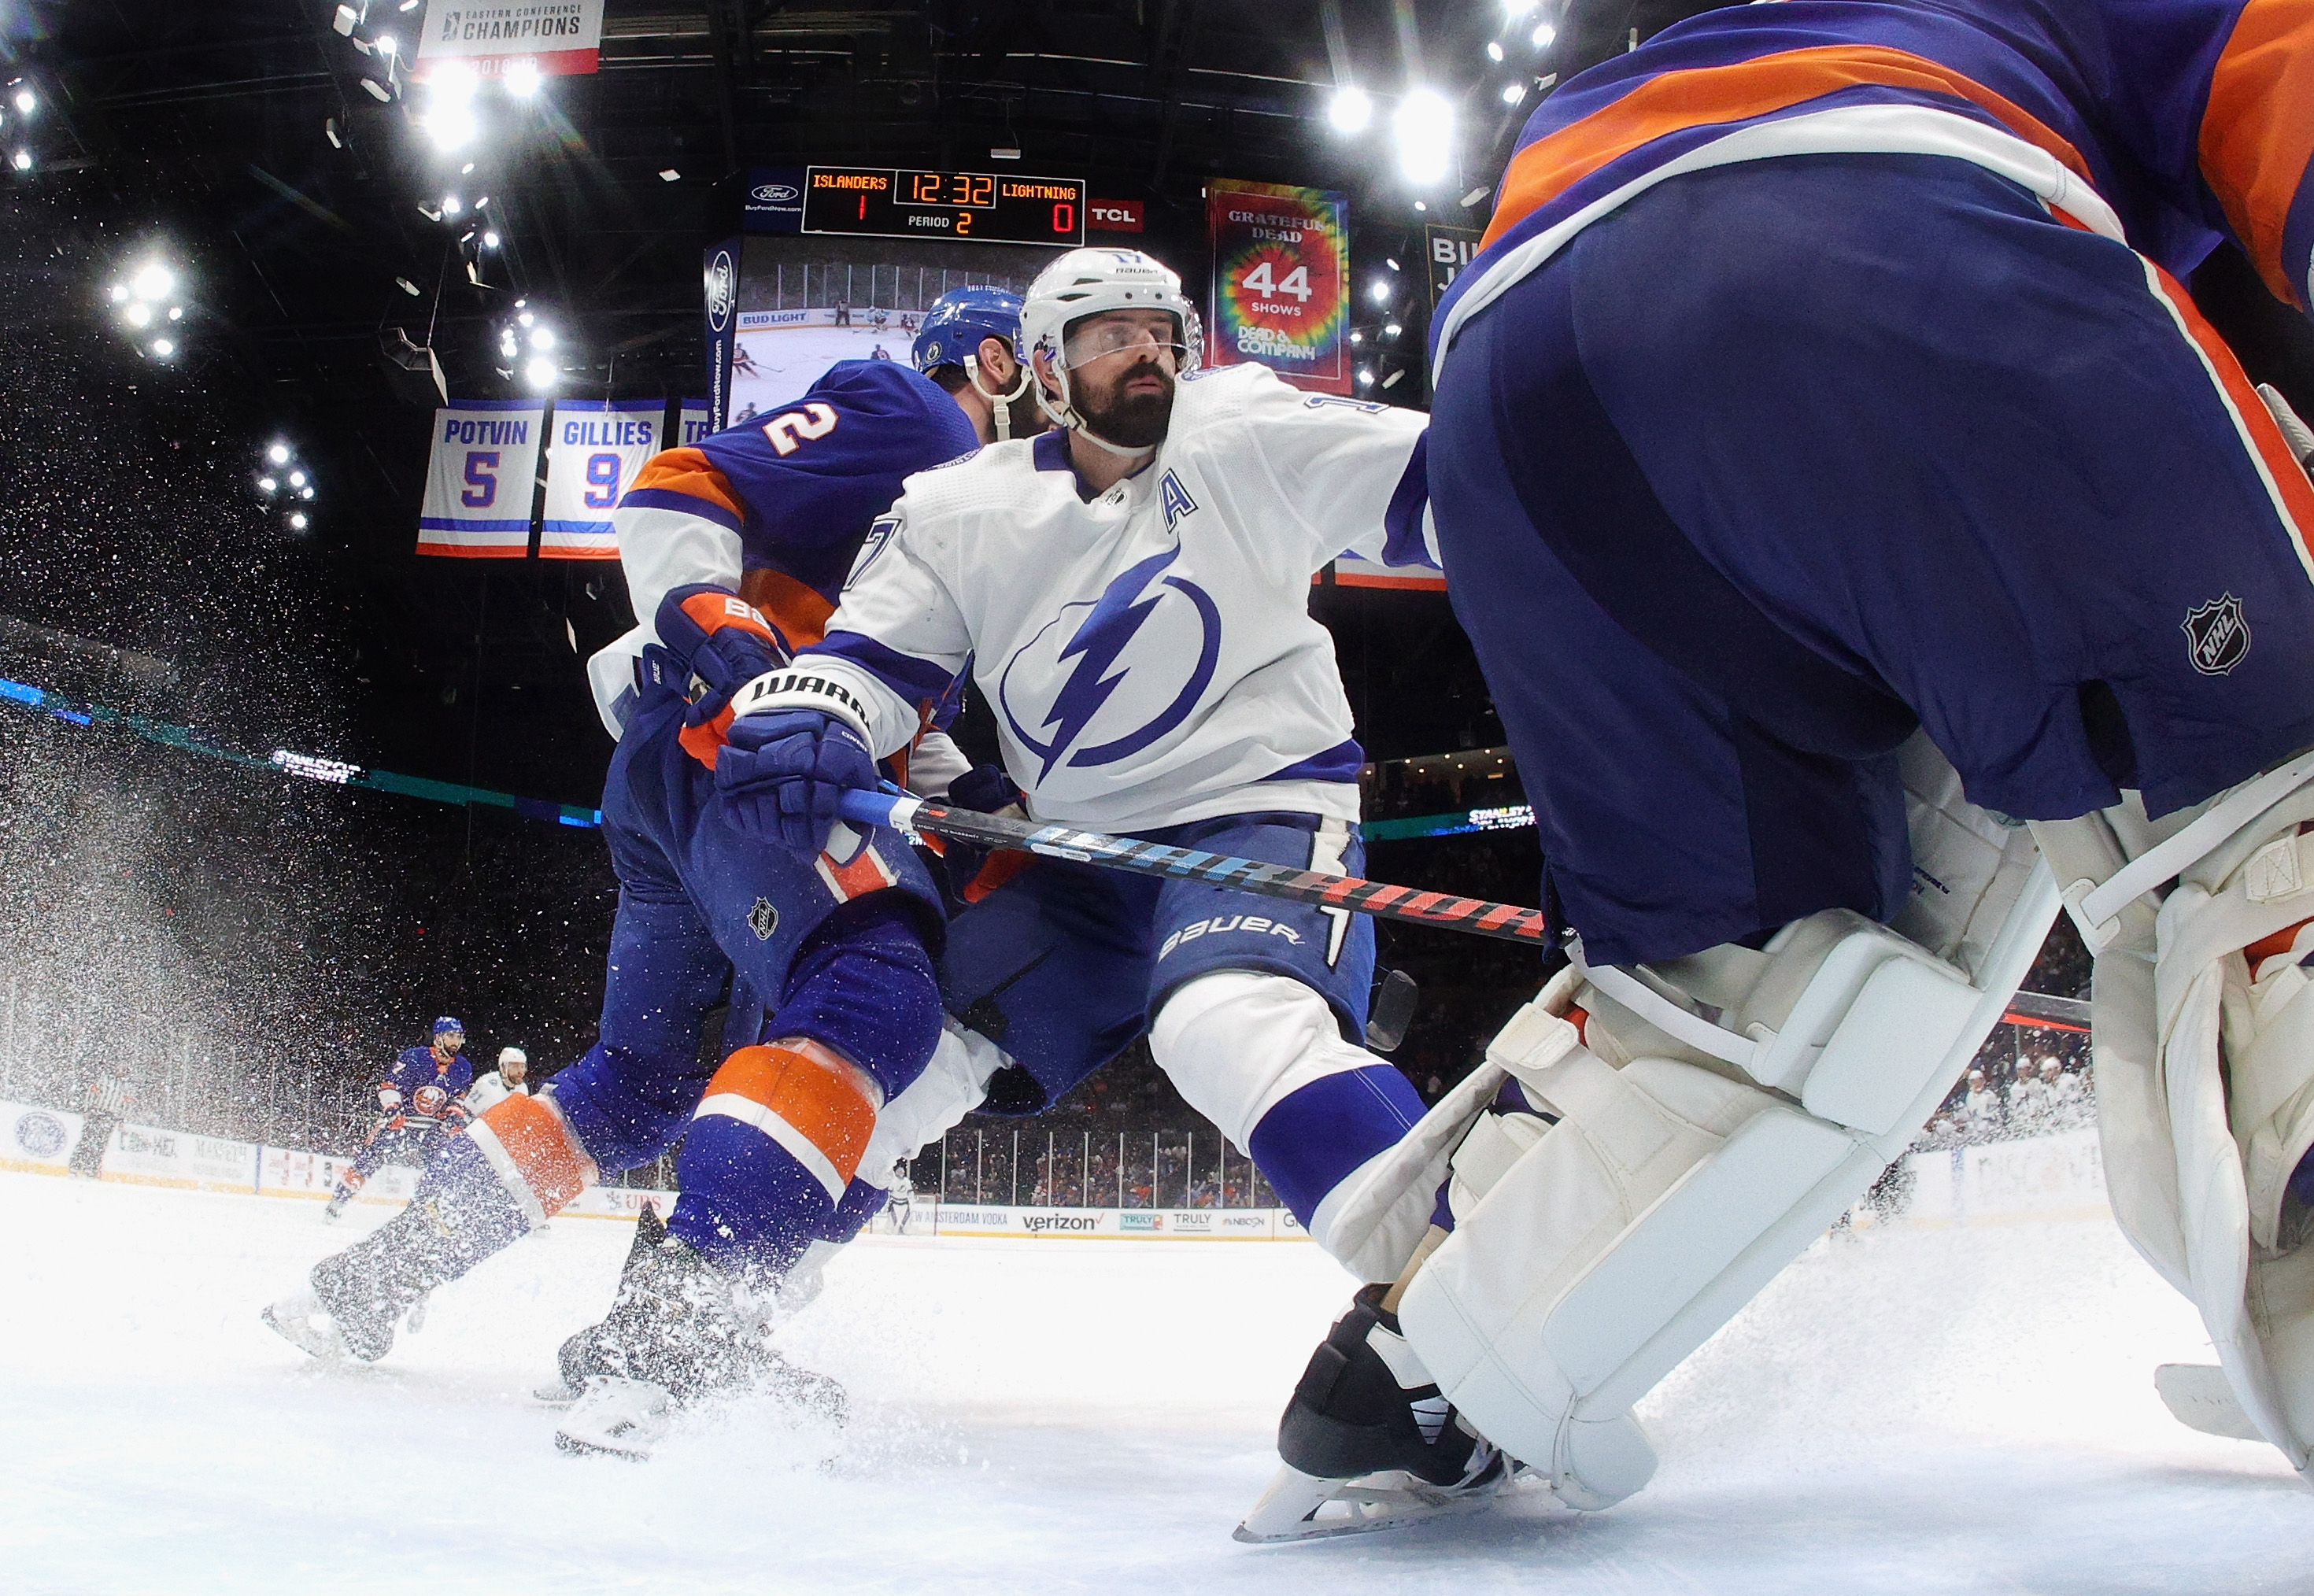 Alex Killorn #17 of the Tampa Bay Lightning skates against the New York Islanders in Game Four of the Stanley Cup Semifinals during the 2021 Stanley Cup Playoffs at the Nassau Coliseum on June 19, 2021 in Uniondale, New York. The Islanders defeated the Lightning 3-2.